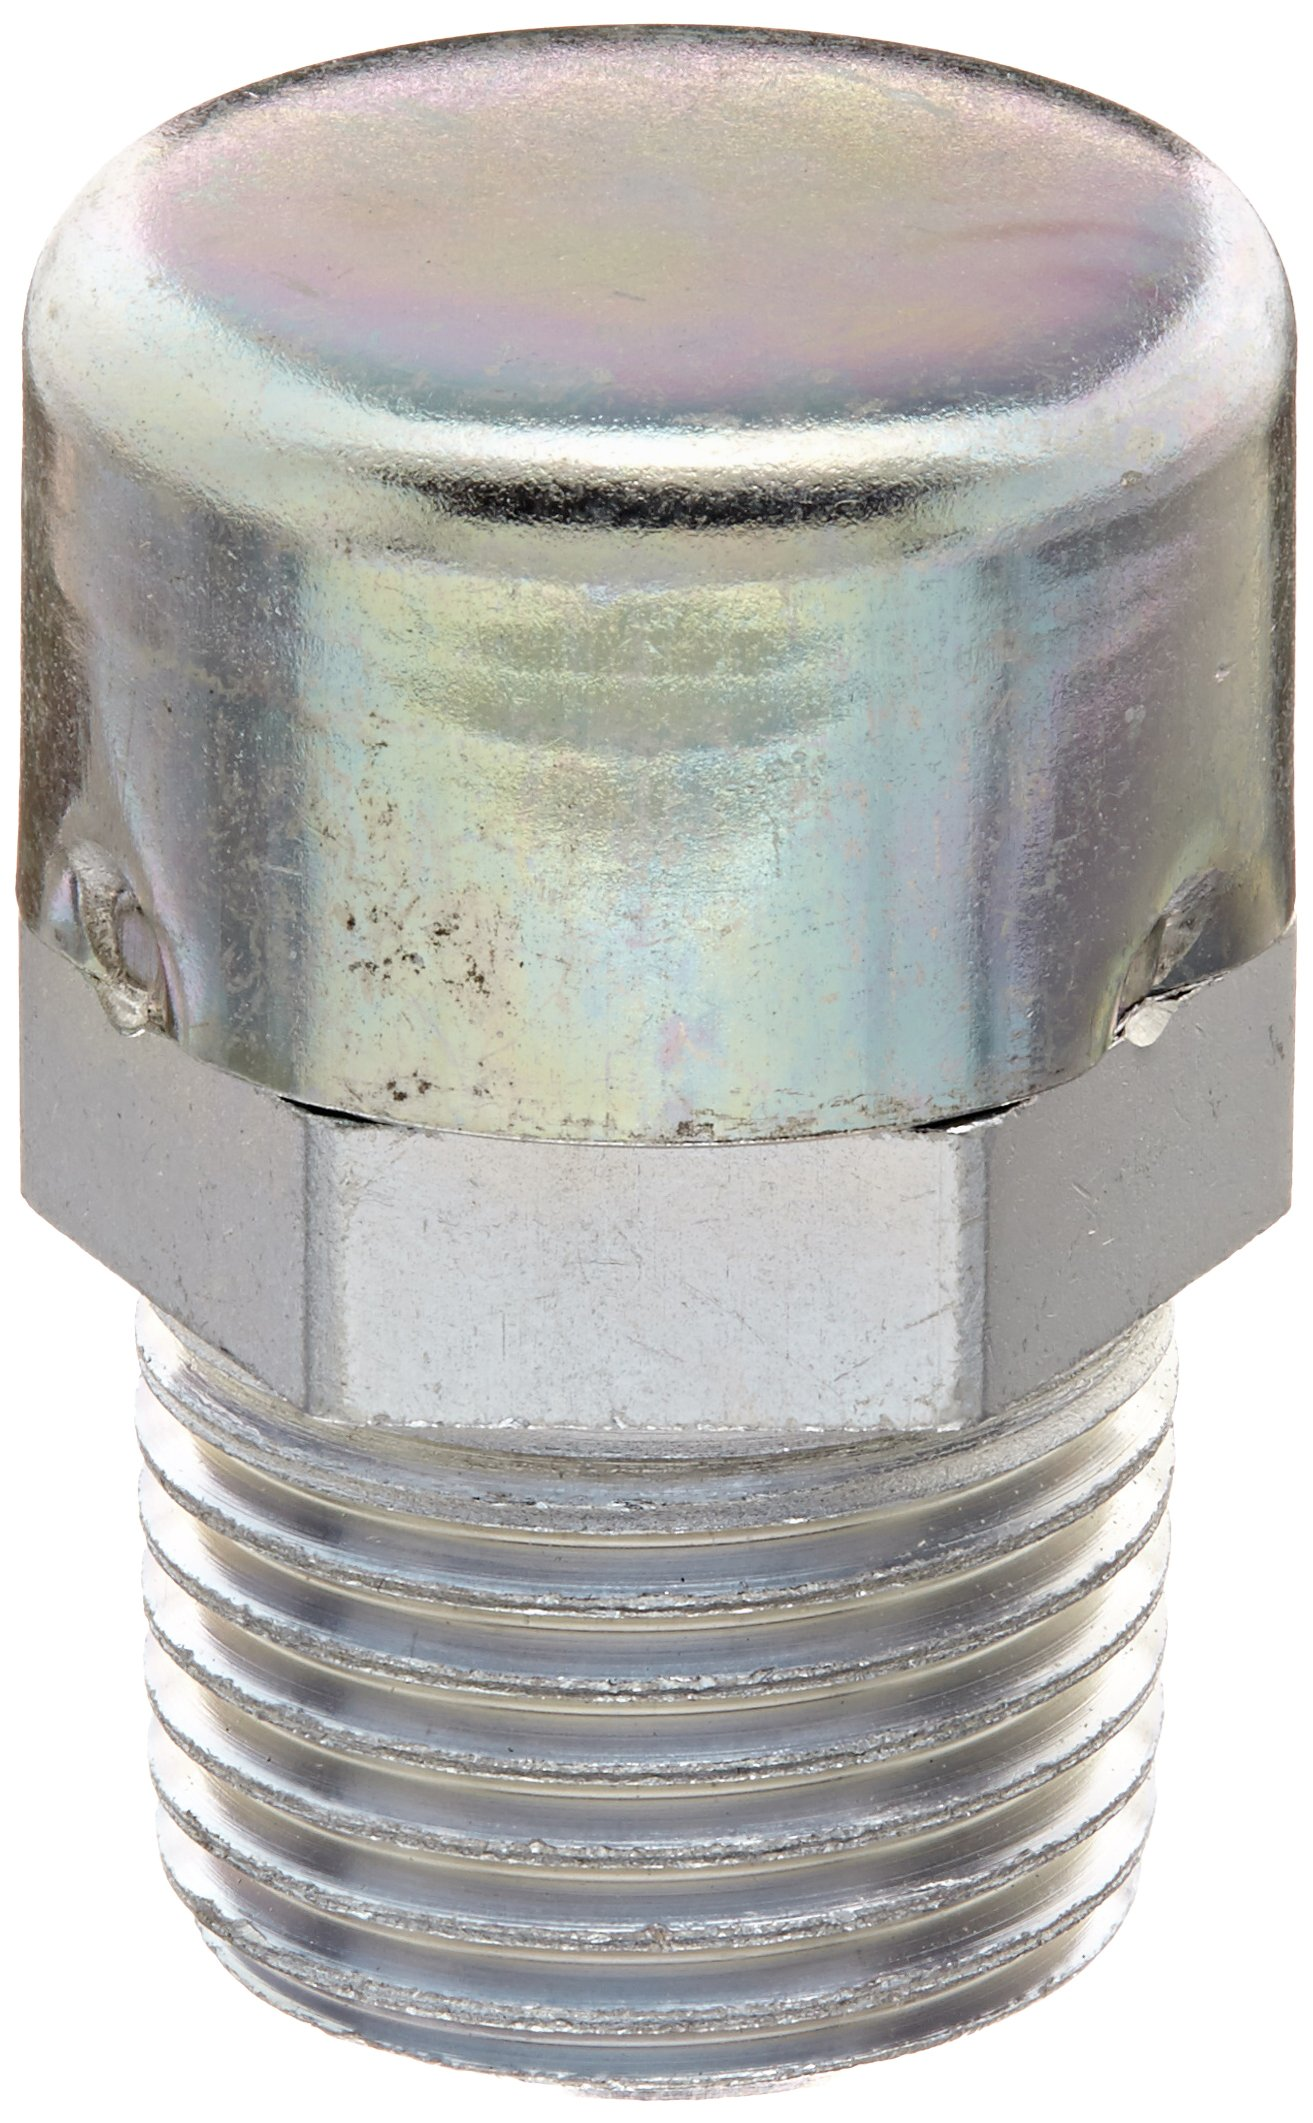 Gits 1631-050001 Style 1631 Breather Vent, 1/2-14 NPT Open Breather